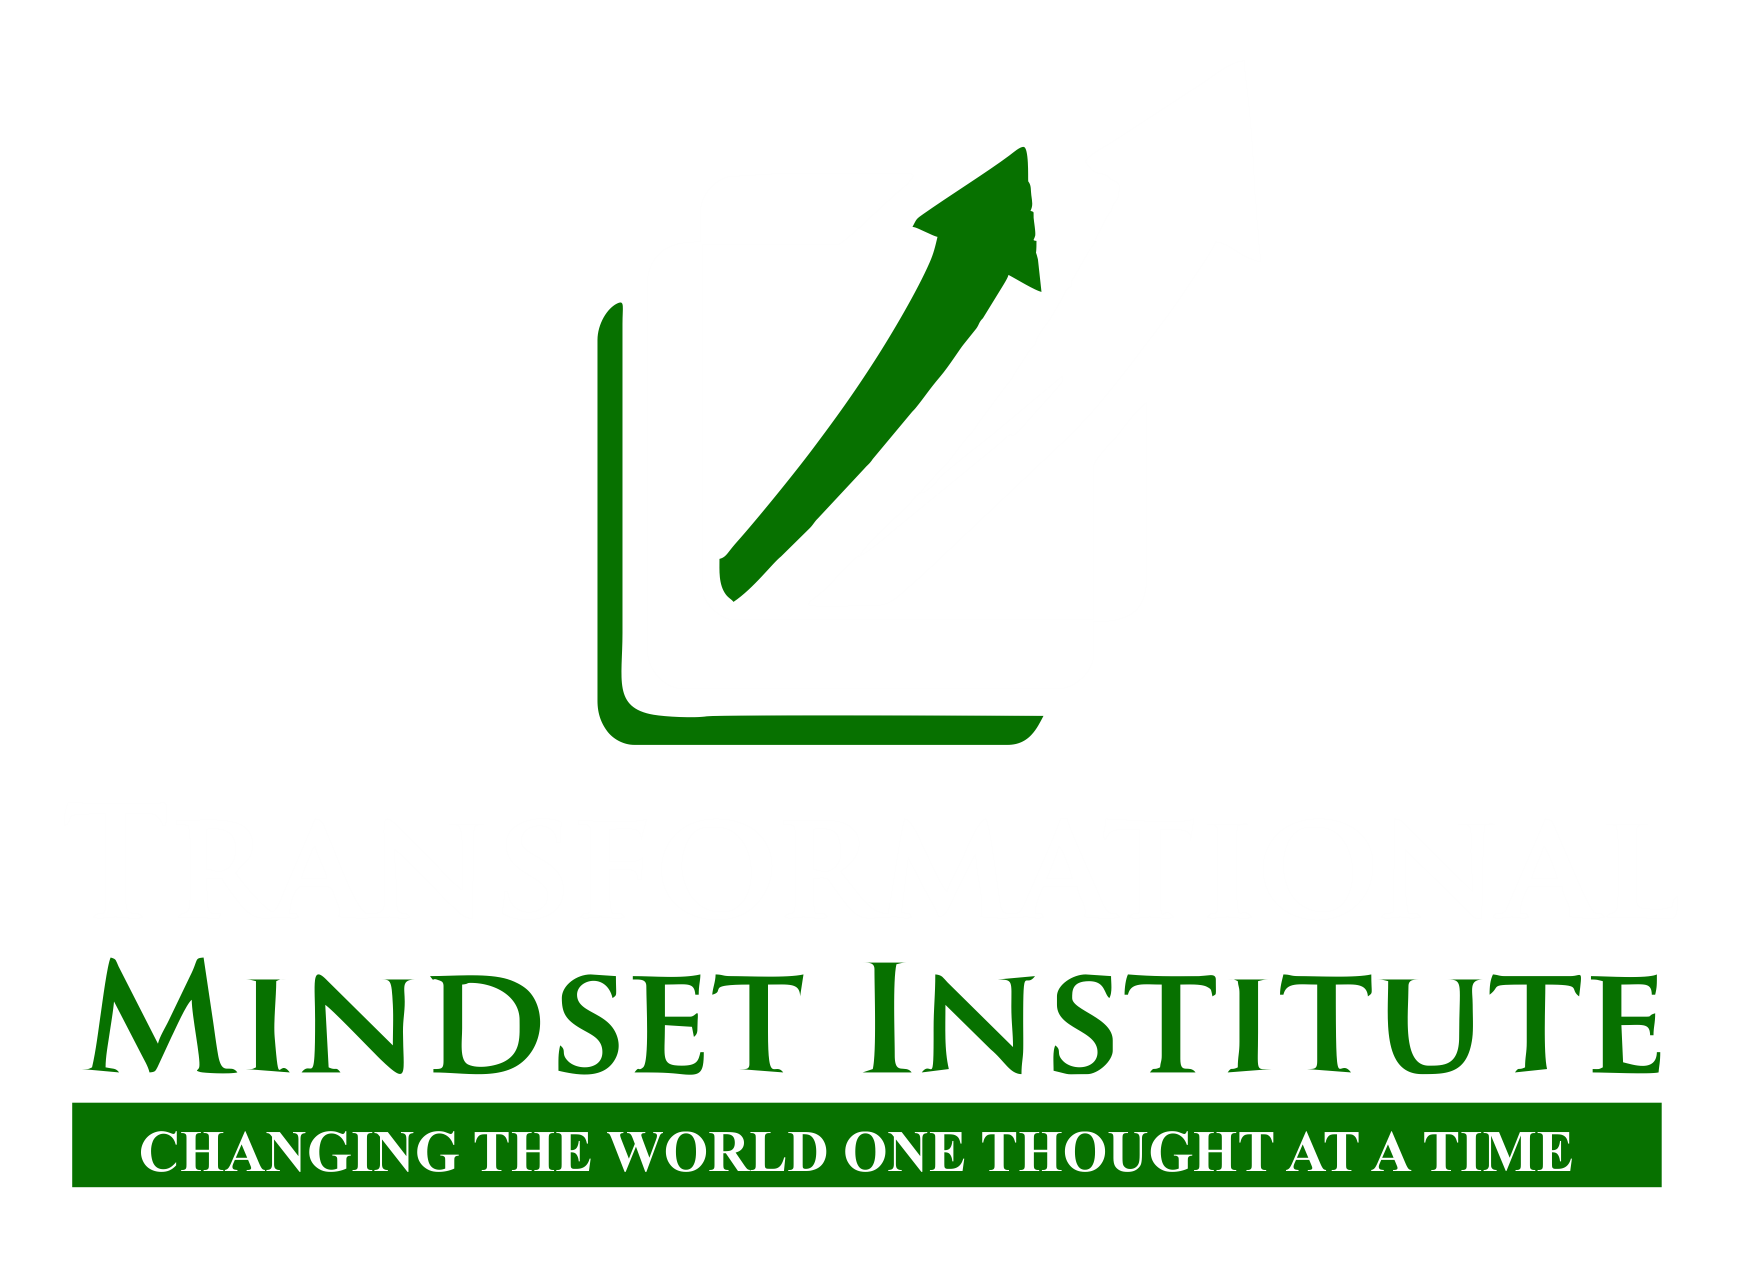 Transformational Mindset Institute